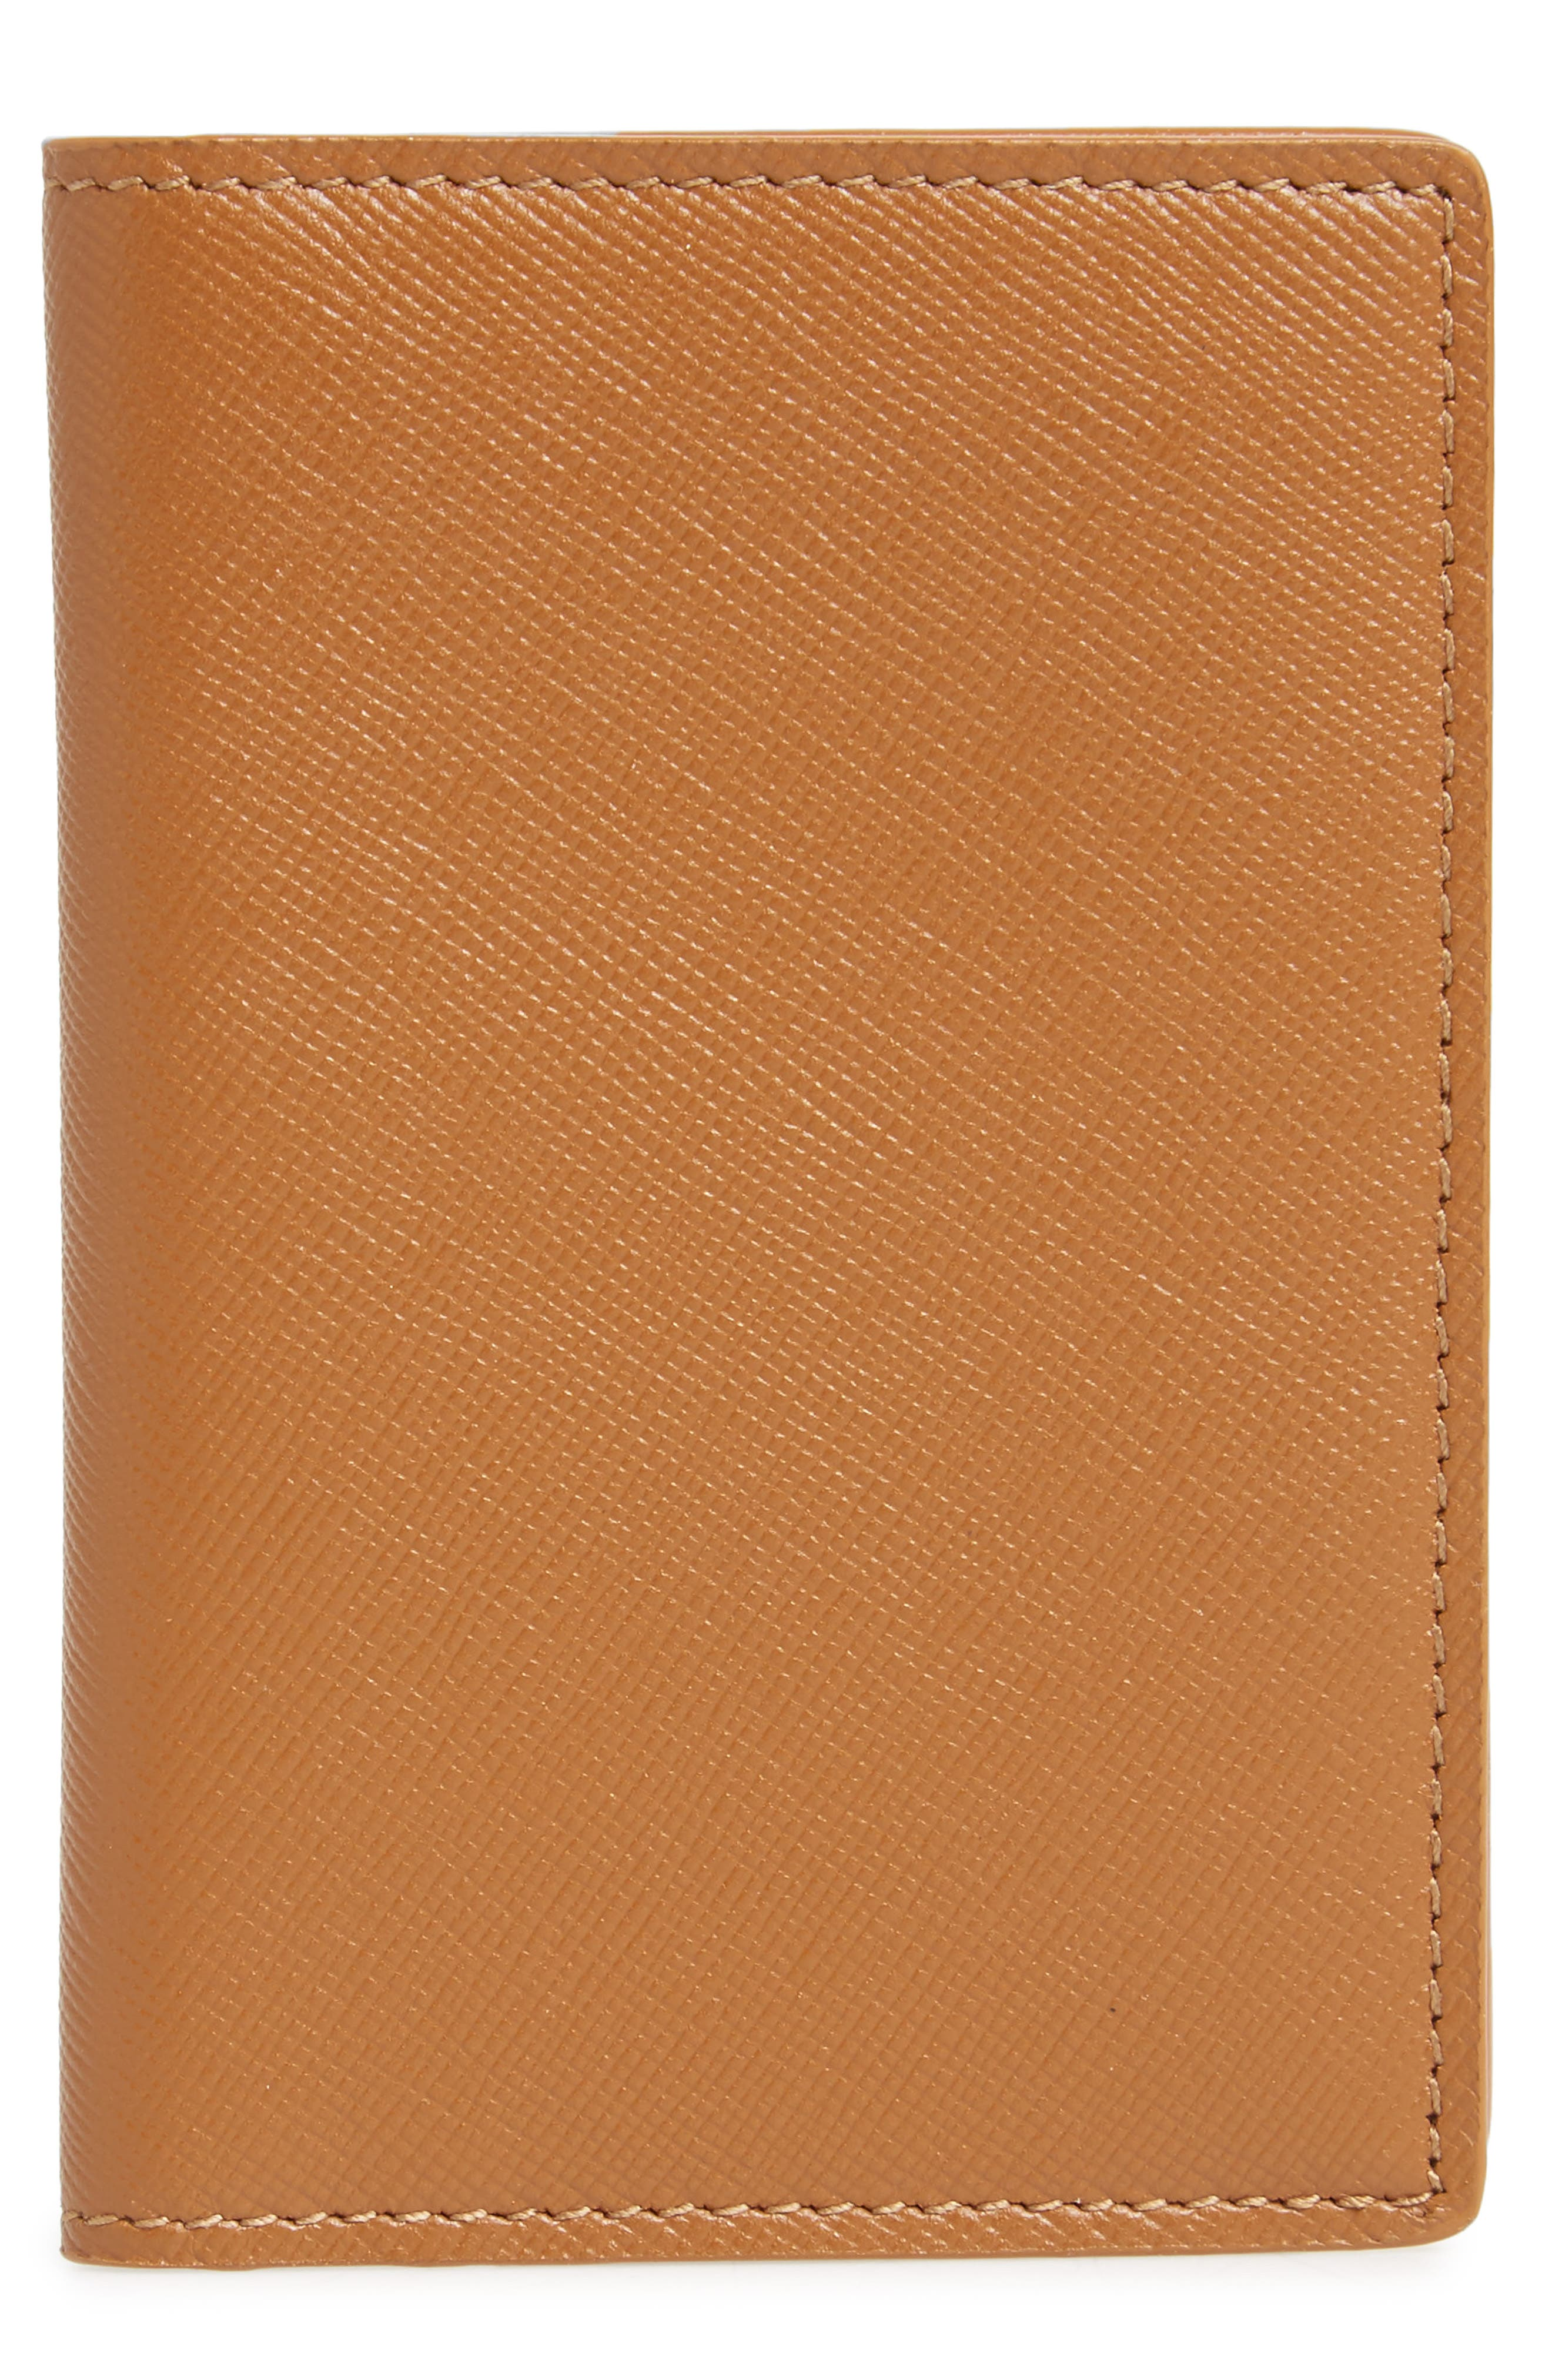 Saffiano Leather Folio Wallet,                         Main,                         color, Brown